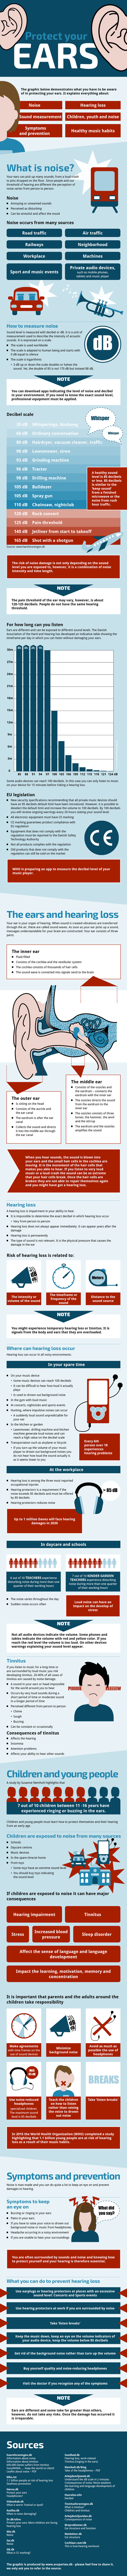 Manage Sound Levels, Protect Your Hearing - Infographic